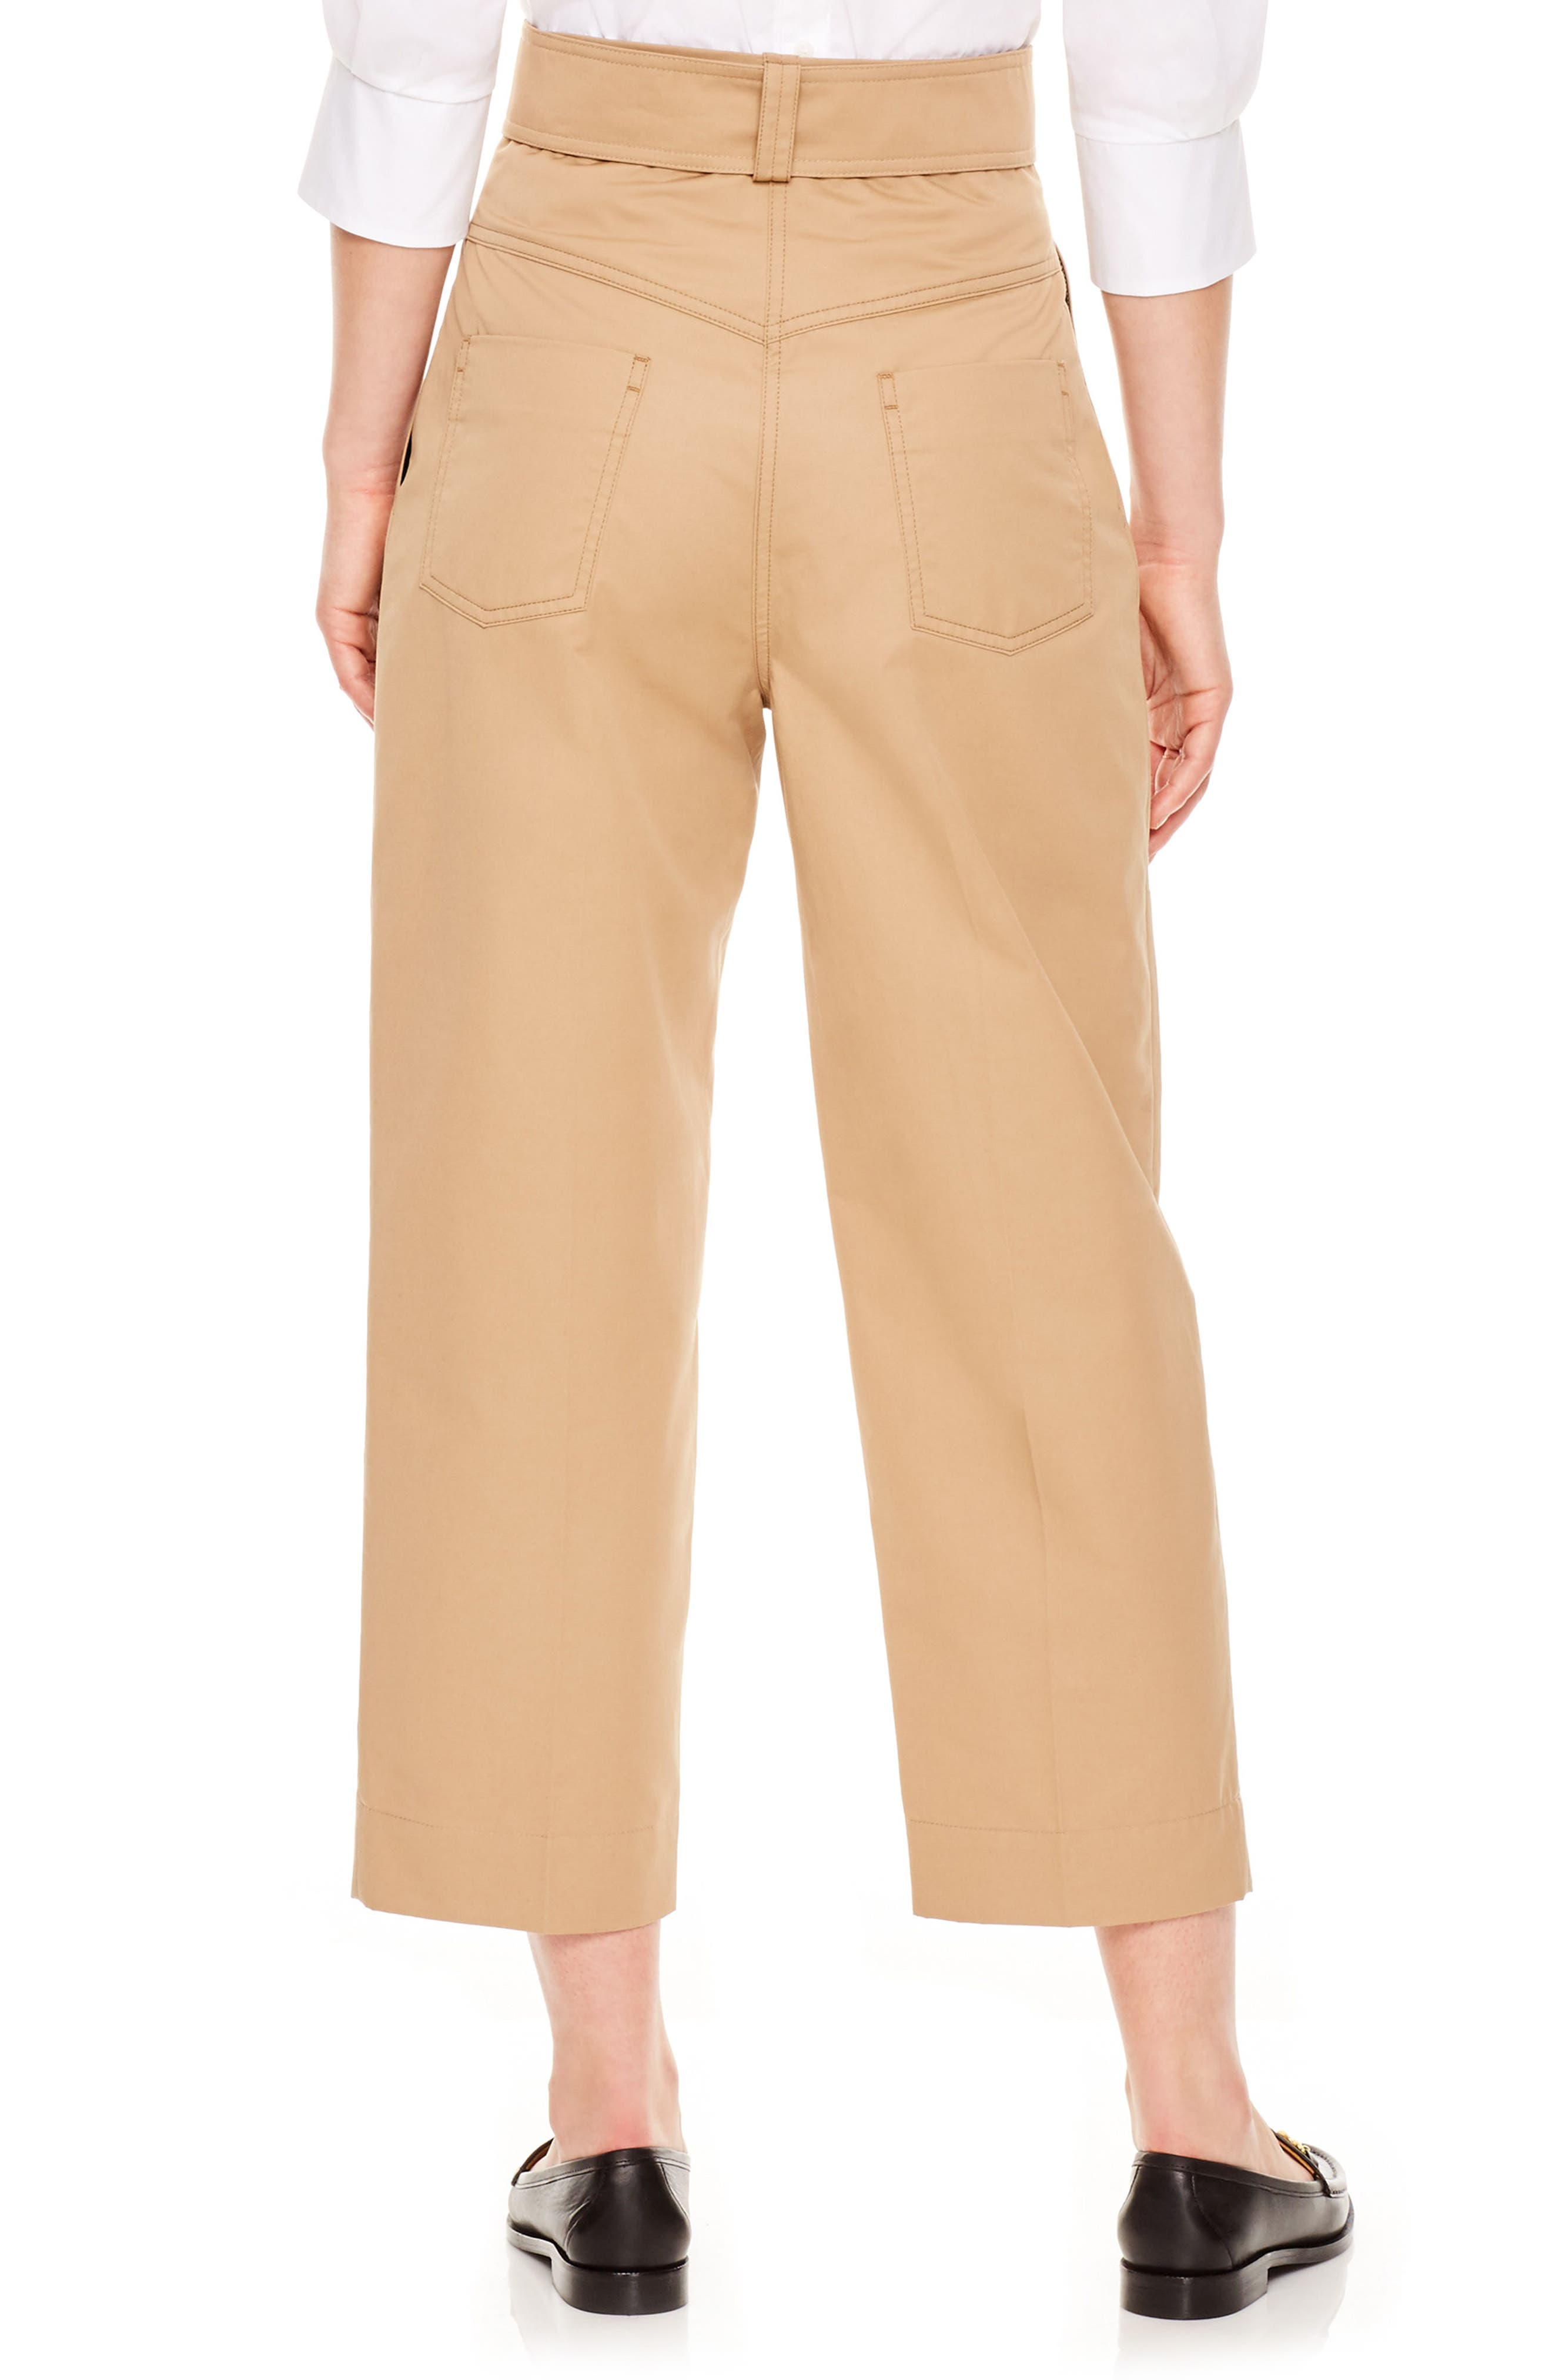 Beige Wide Leg Crop Pants,                             Alternate thumbnail 2, color,                             250